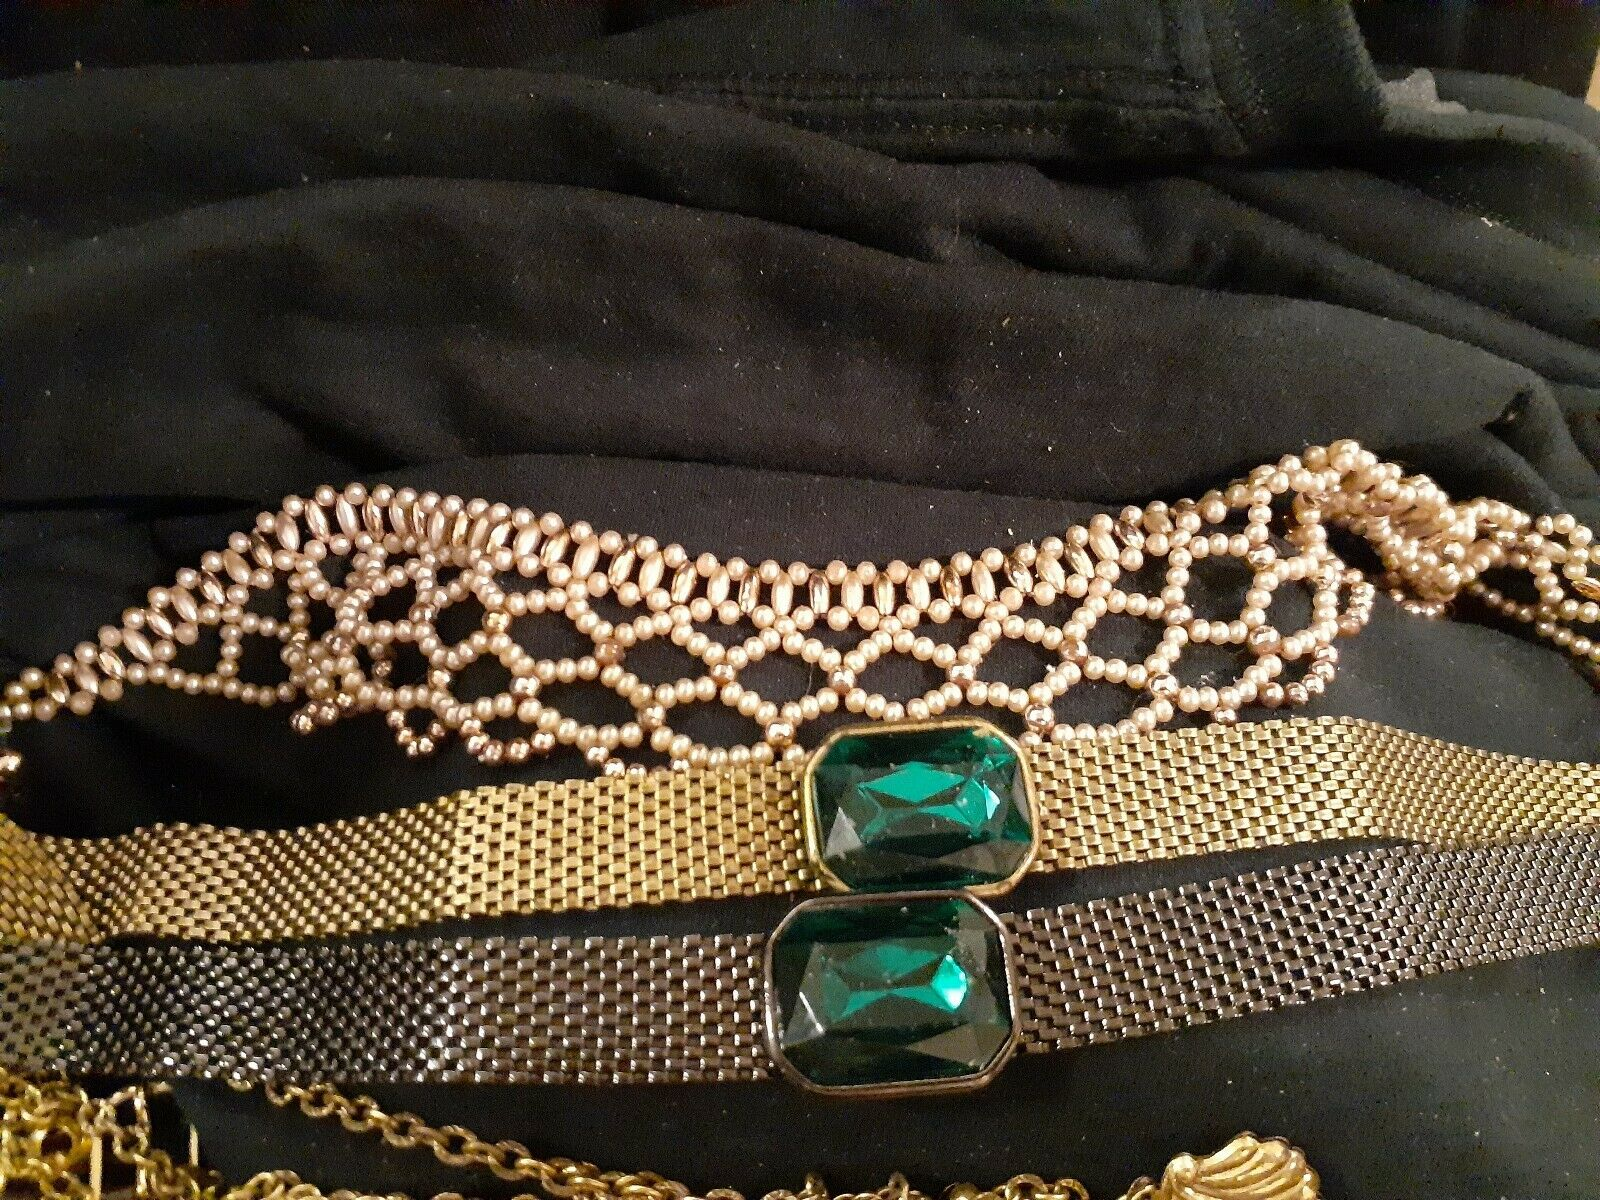 LOT OF VINTAGE COSTUME JEWELRY WATCHES CHARM BRAC… - image 3